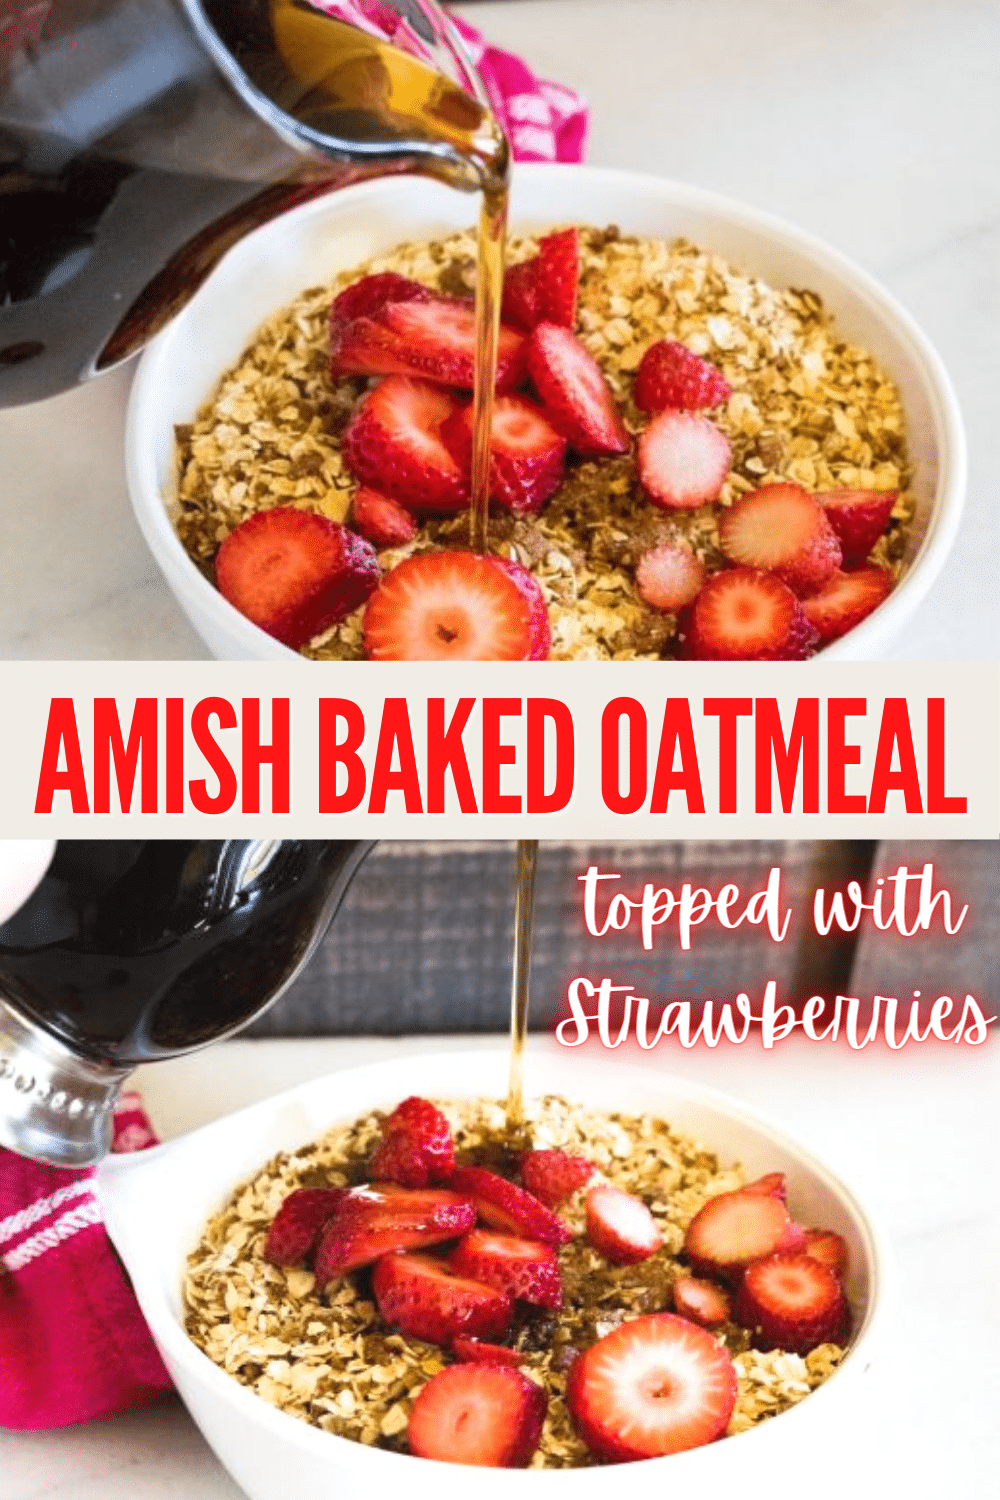 Amish Baked Oatmeal Topped with Strawberries is a delicious recipe for breakfast or brunch. It also only has 5 ingredients and is very simple to make. #oatmeal #amishrecipe #breakfast #strawberries via @wondermomwannab